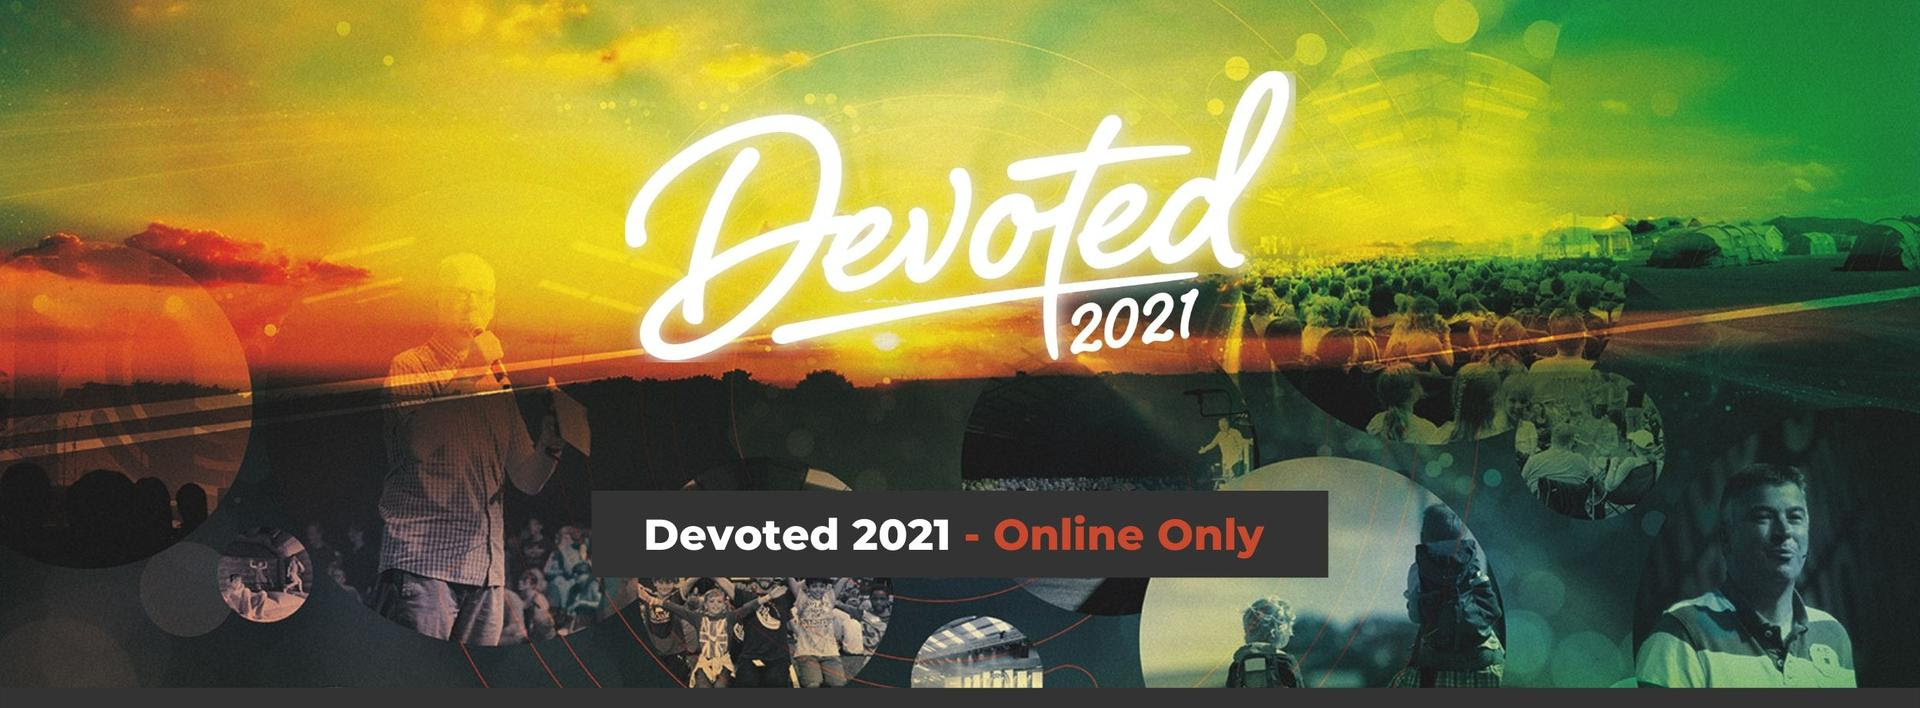 Devoted 2021 - Subscribe to YouTube